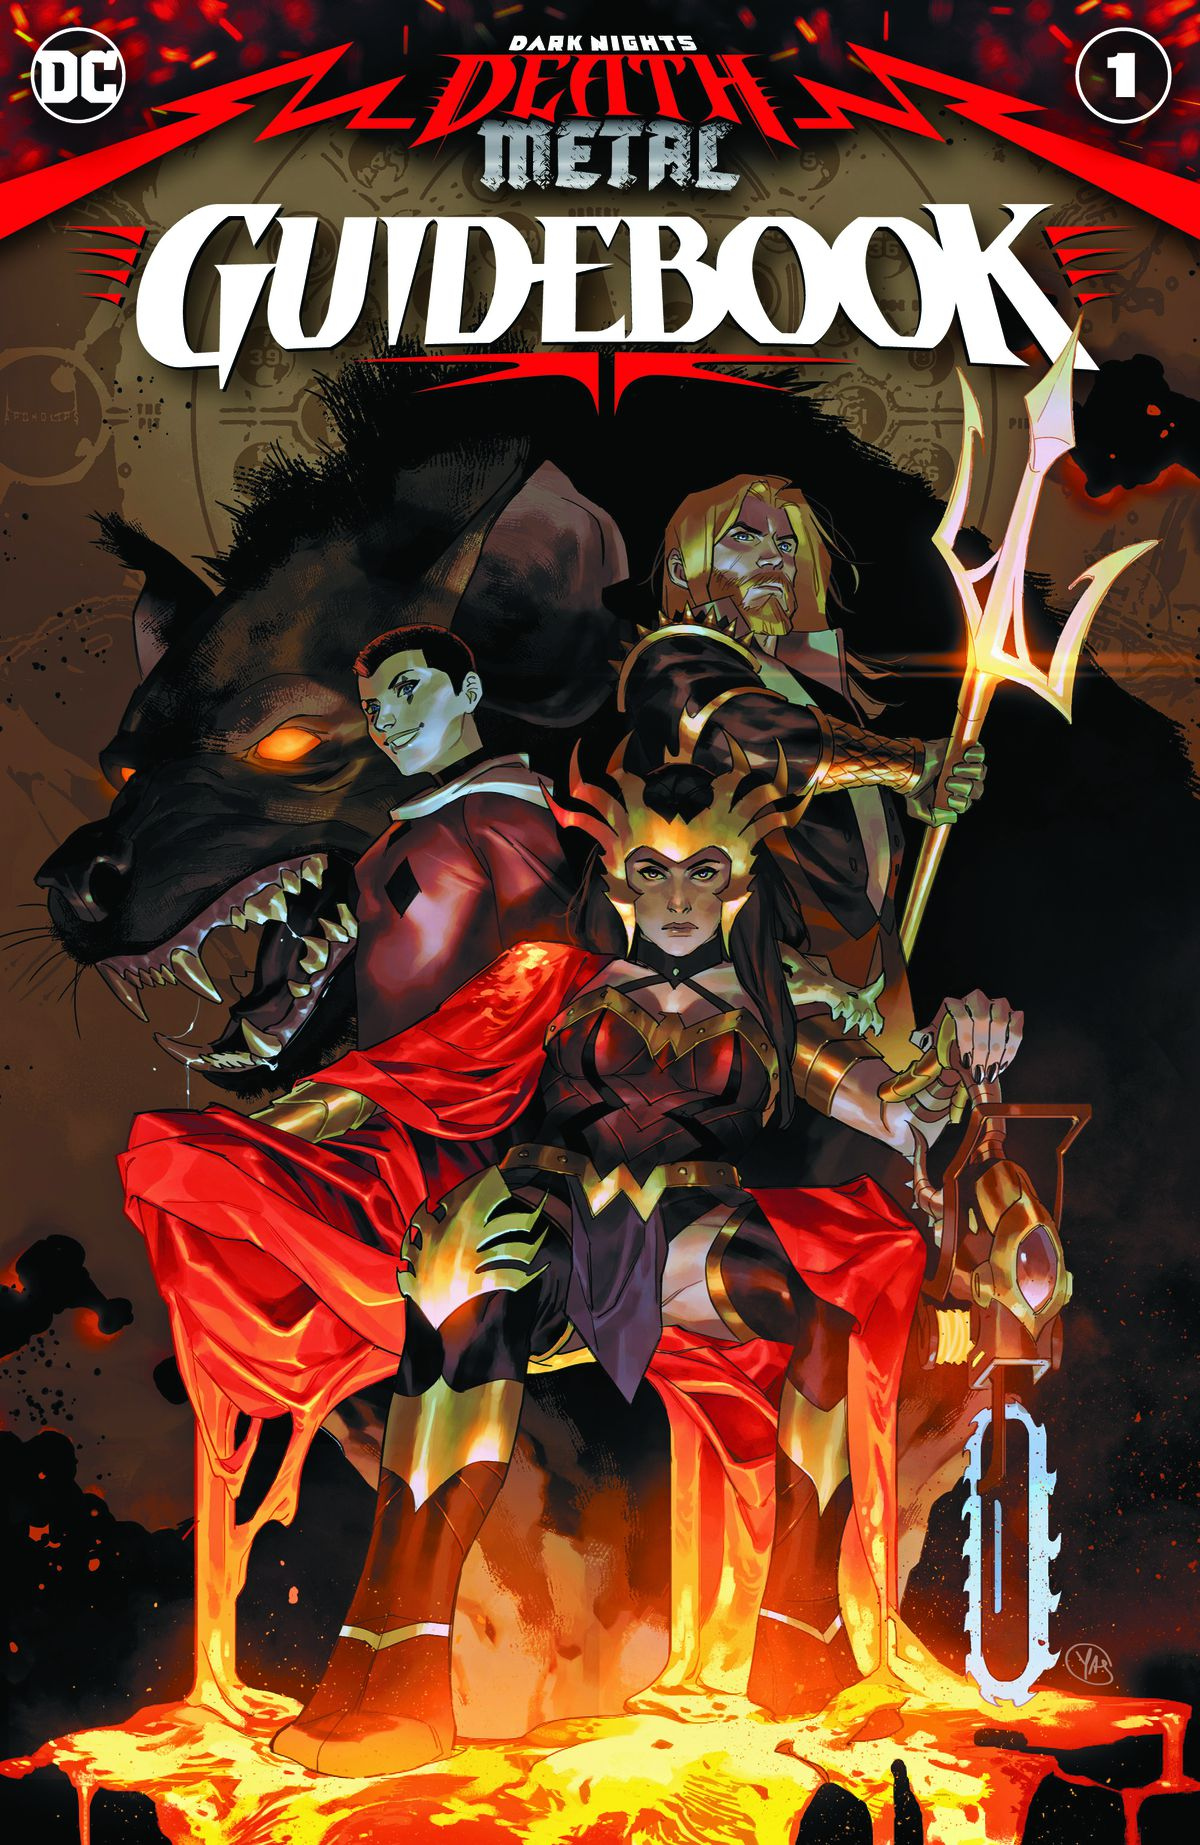 Wonder Woman lounges on a lava throne with her chainsaw, flanked by Aquaman, Harley Quinn, and massive hyena on the cover of Dark Nights: Death Metal Guidebook, DC Comics (2020).